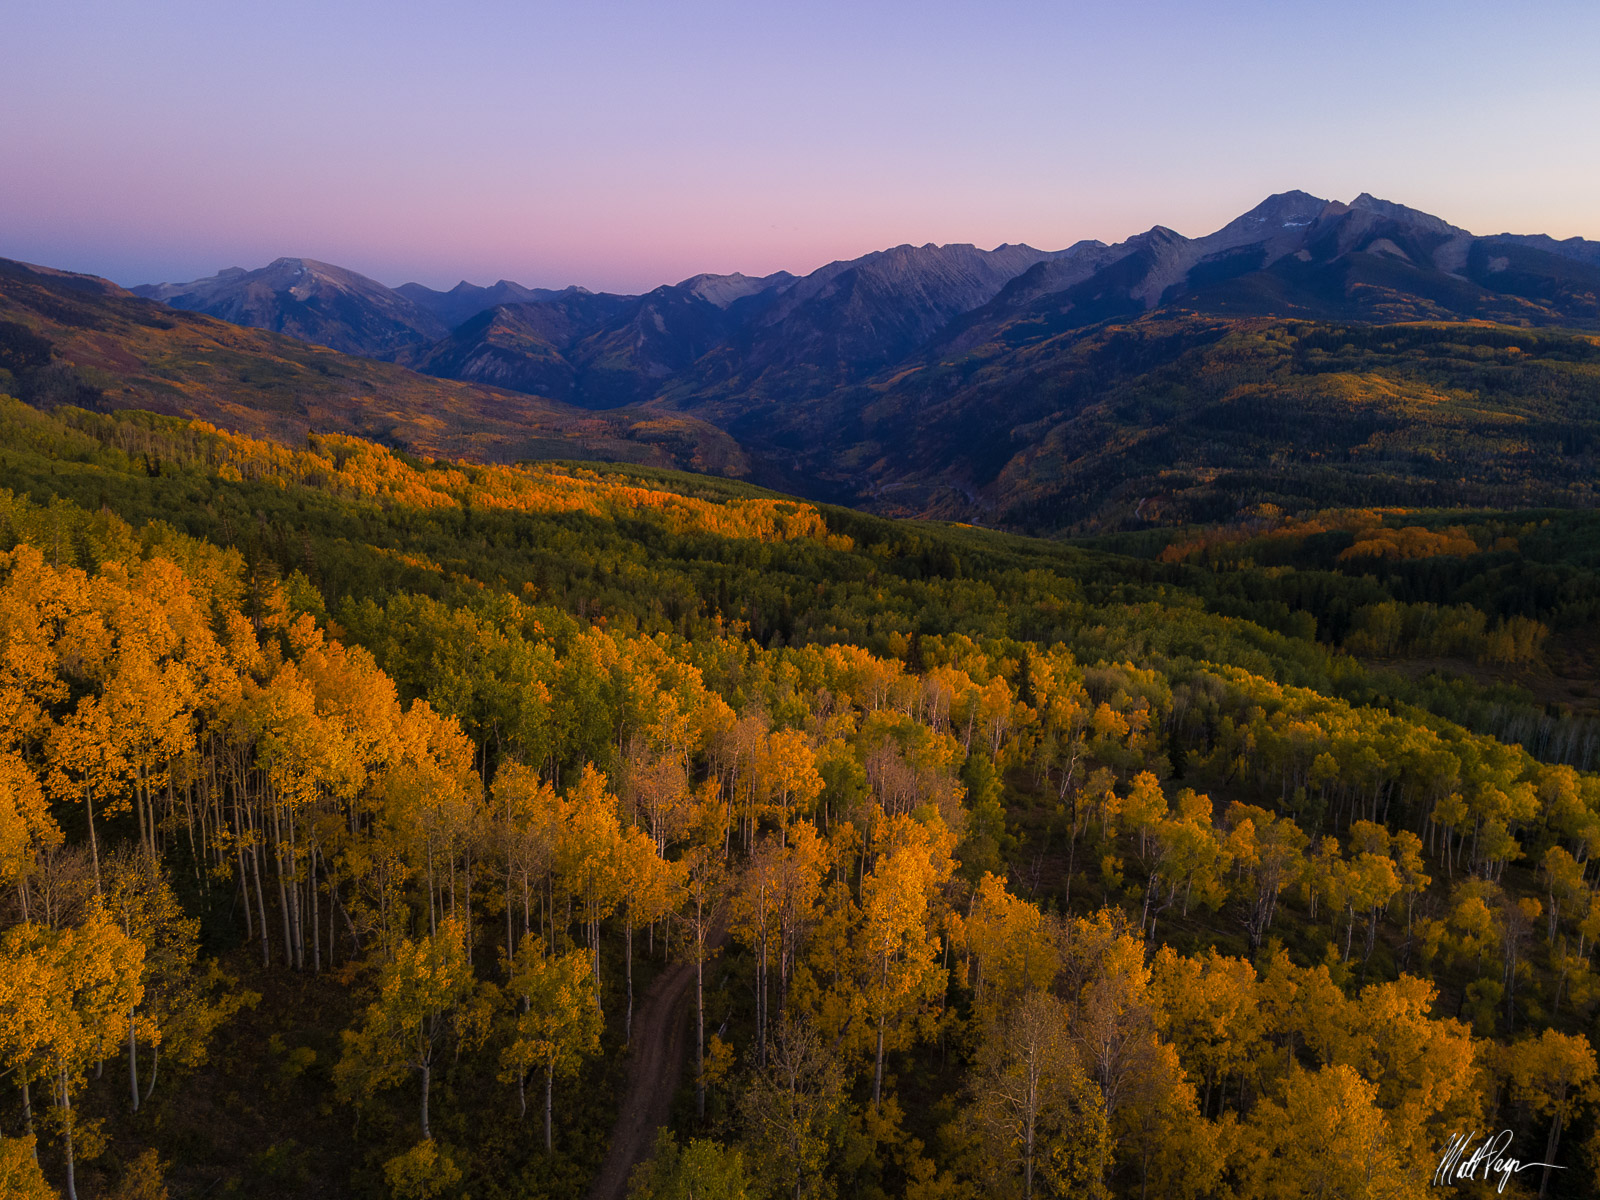 After a peaceful hike through changing aspen trees in this beautiful forest near Carbondale, Colorado, I enjoyed the serenity...